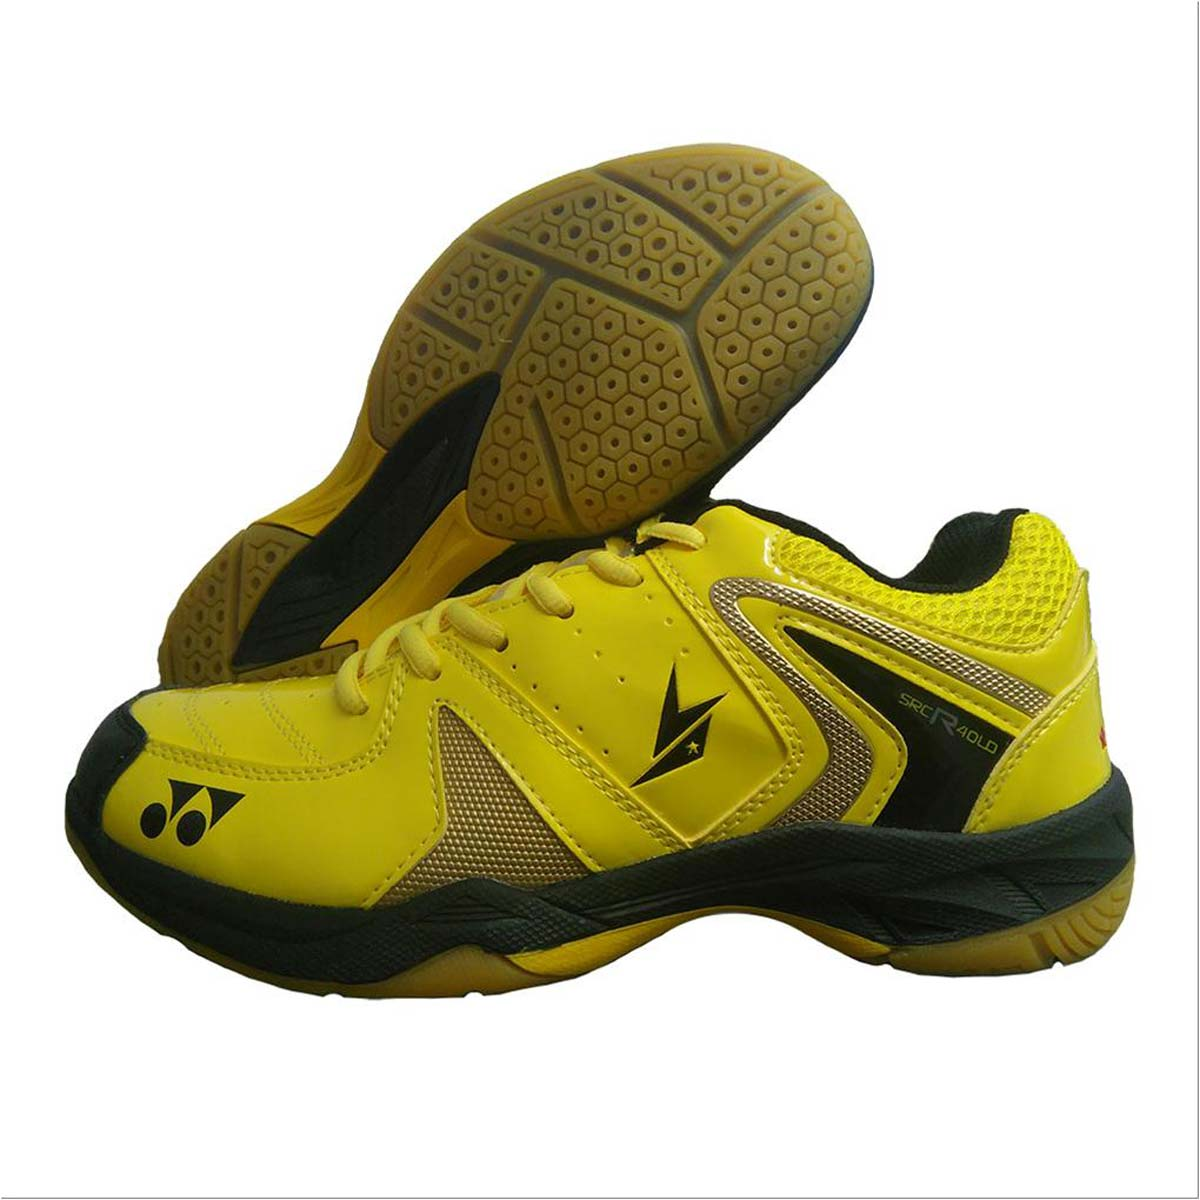 2c3700fd5 Buy Yonex SRCR 40 LD Badminton Shoes (Yellow) Online in India